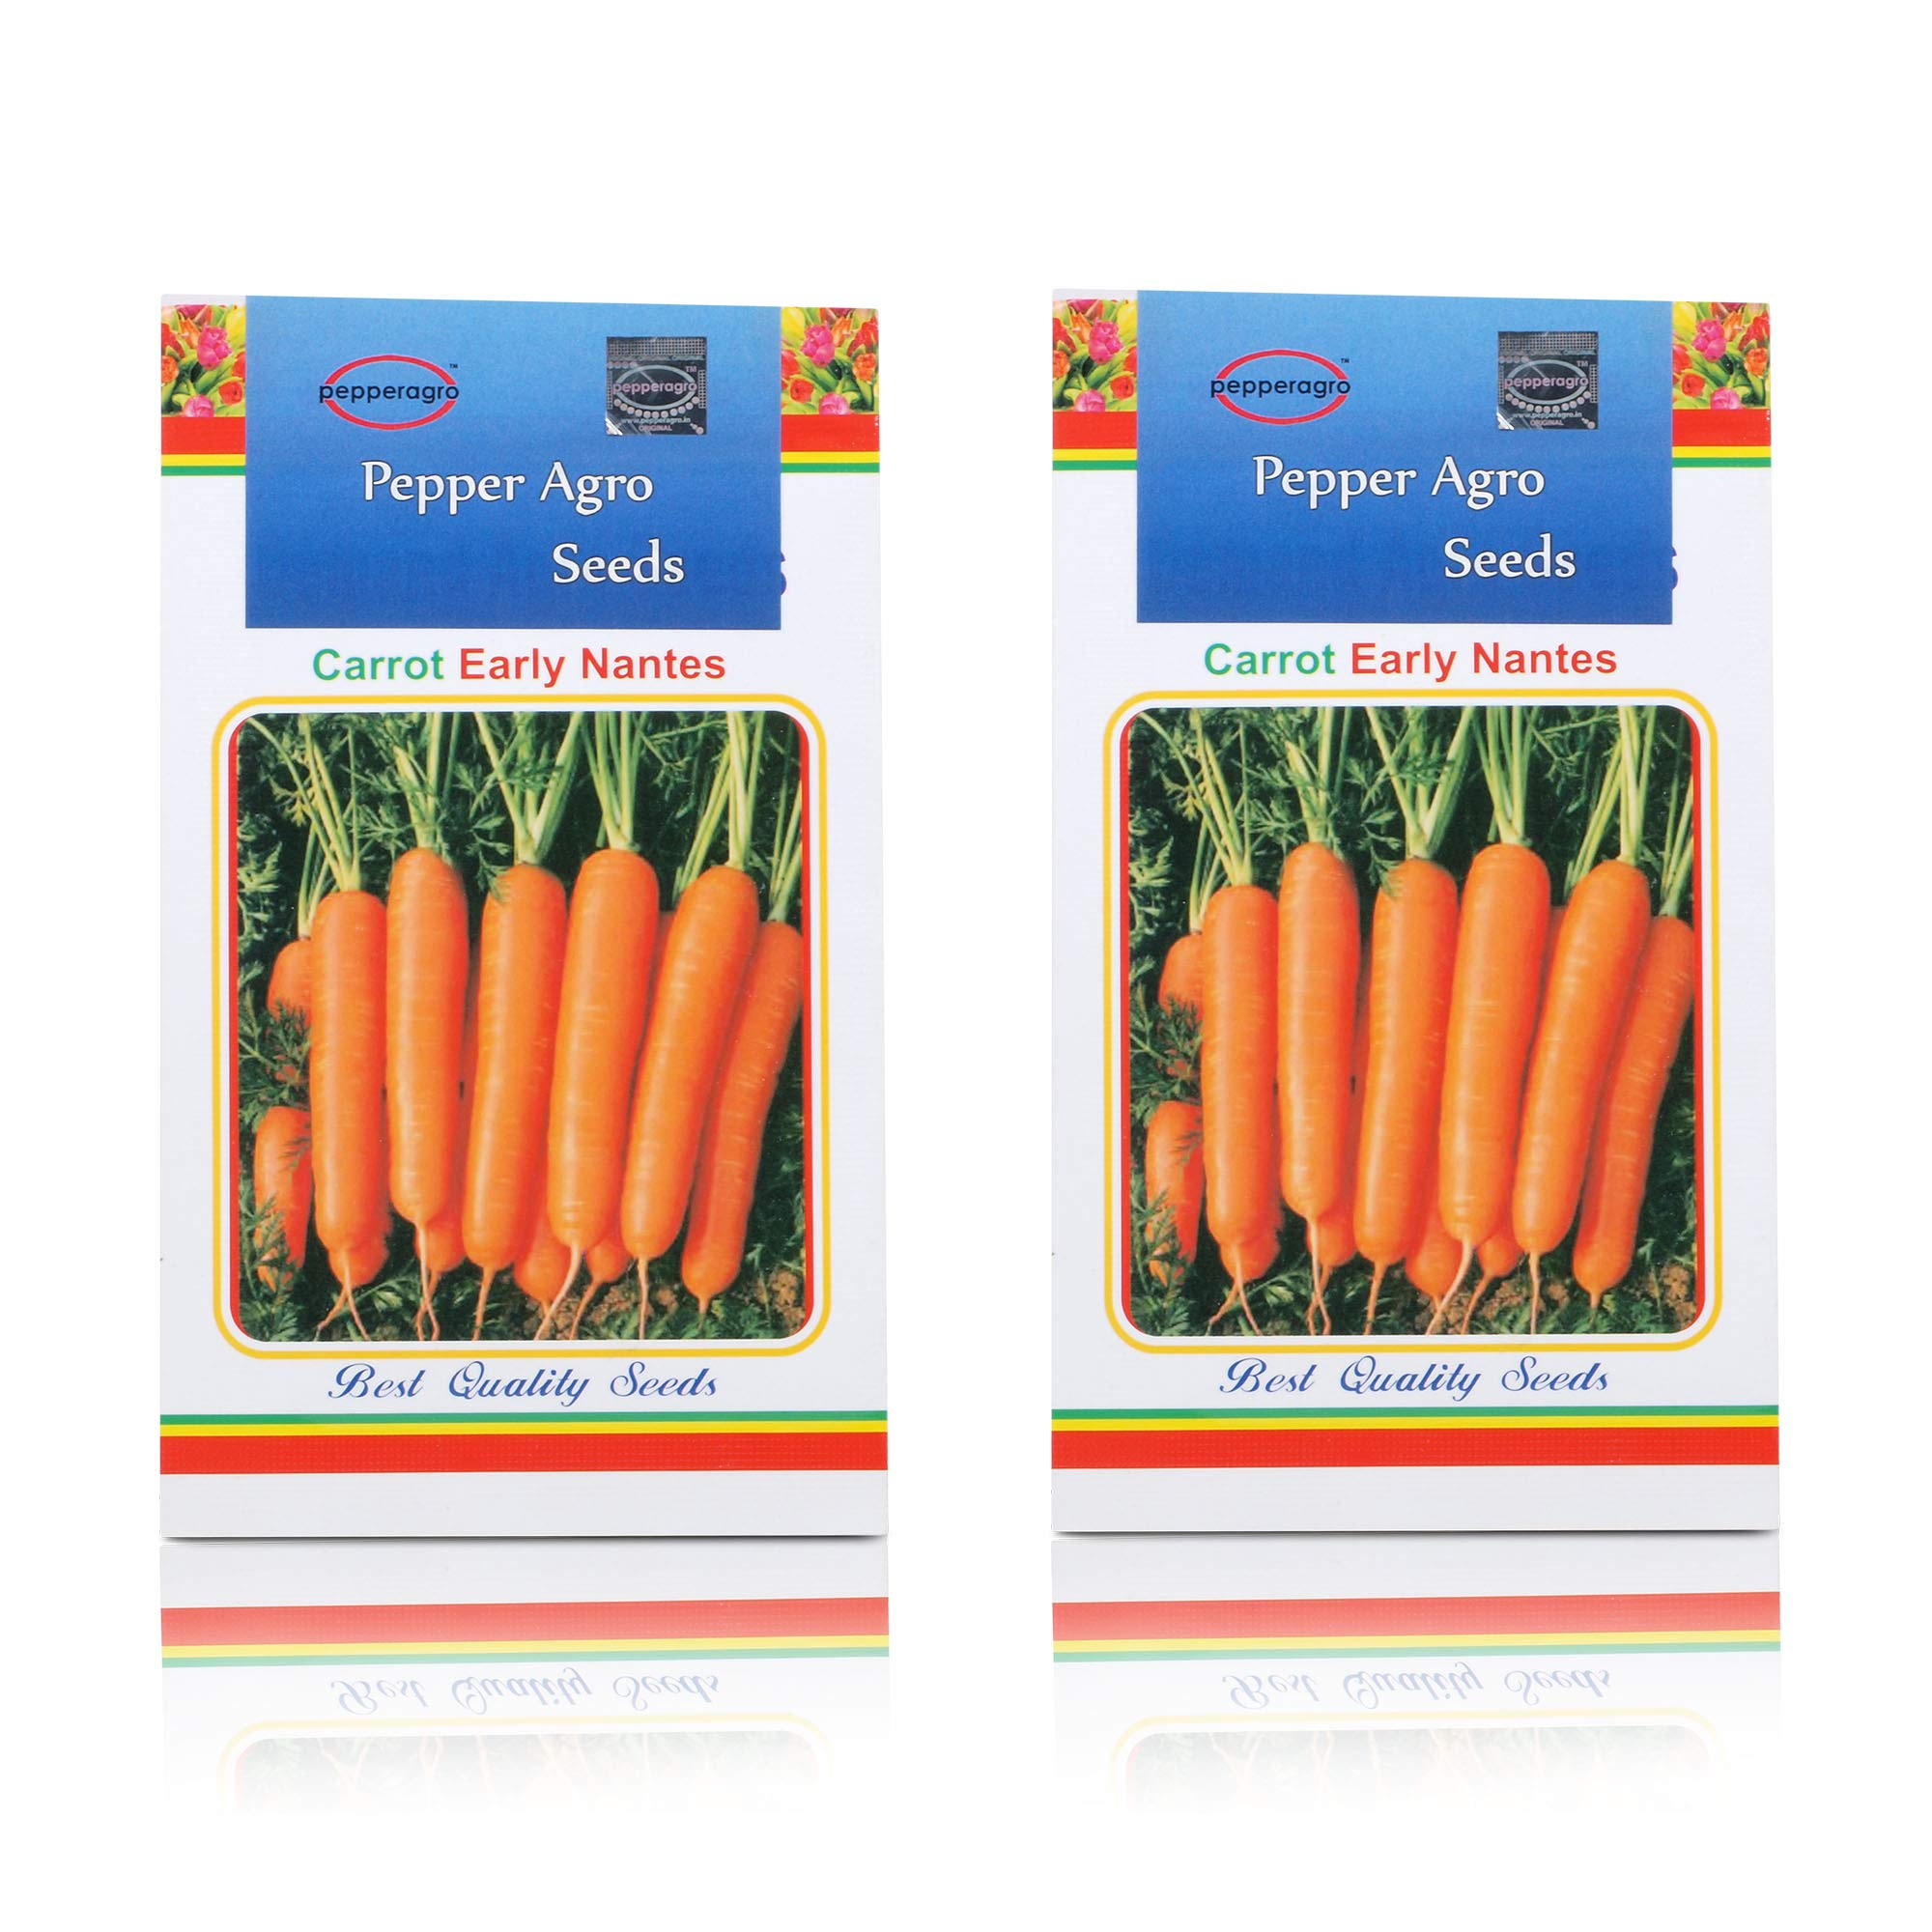 Pepper Agro Carrot Vegetable seeds 2 packs (B074Y3JVX8) Amazon Price History, Amazon Price Tracker